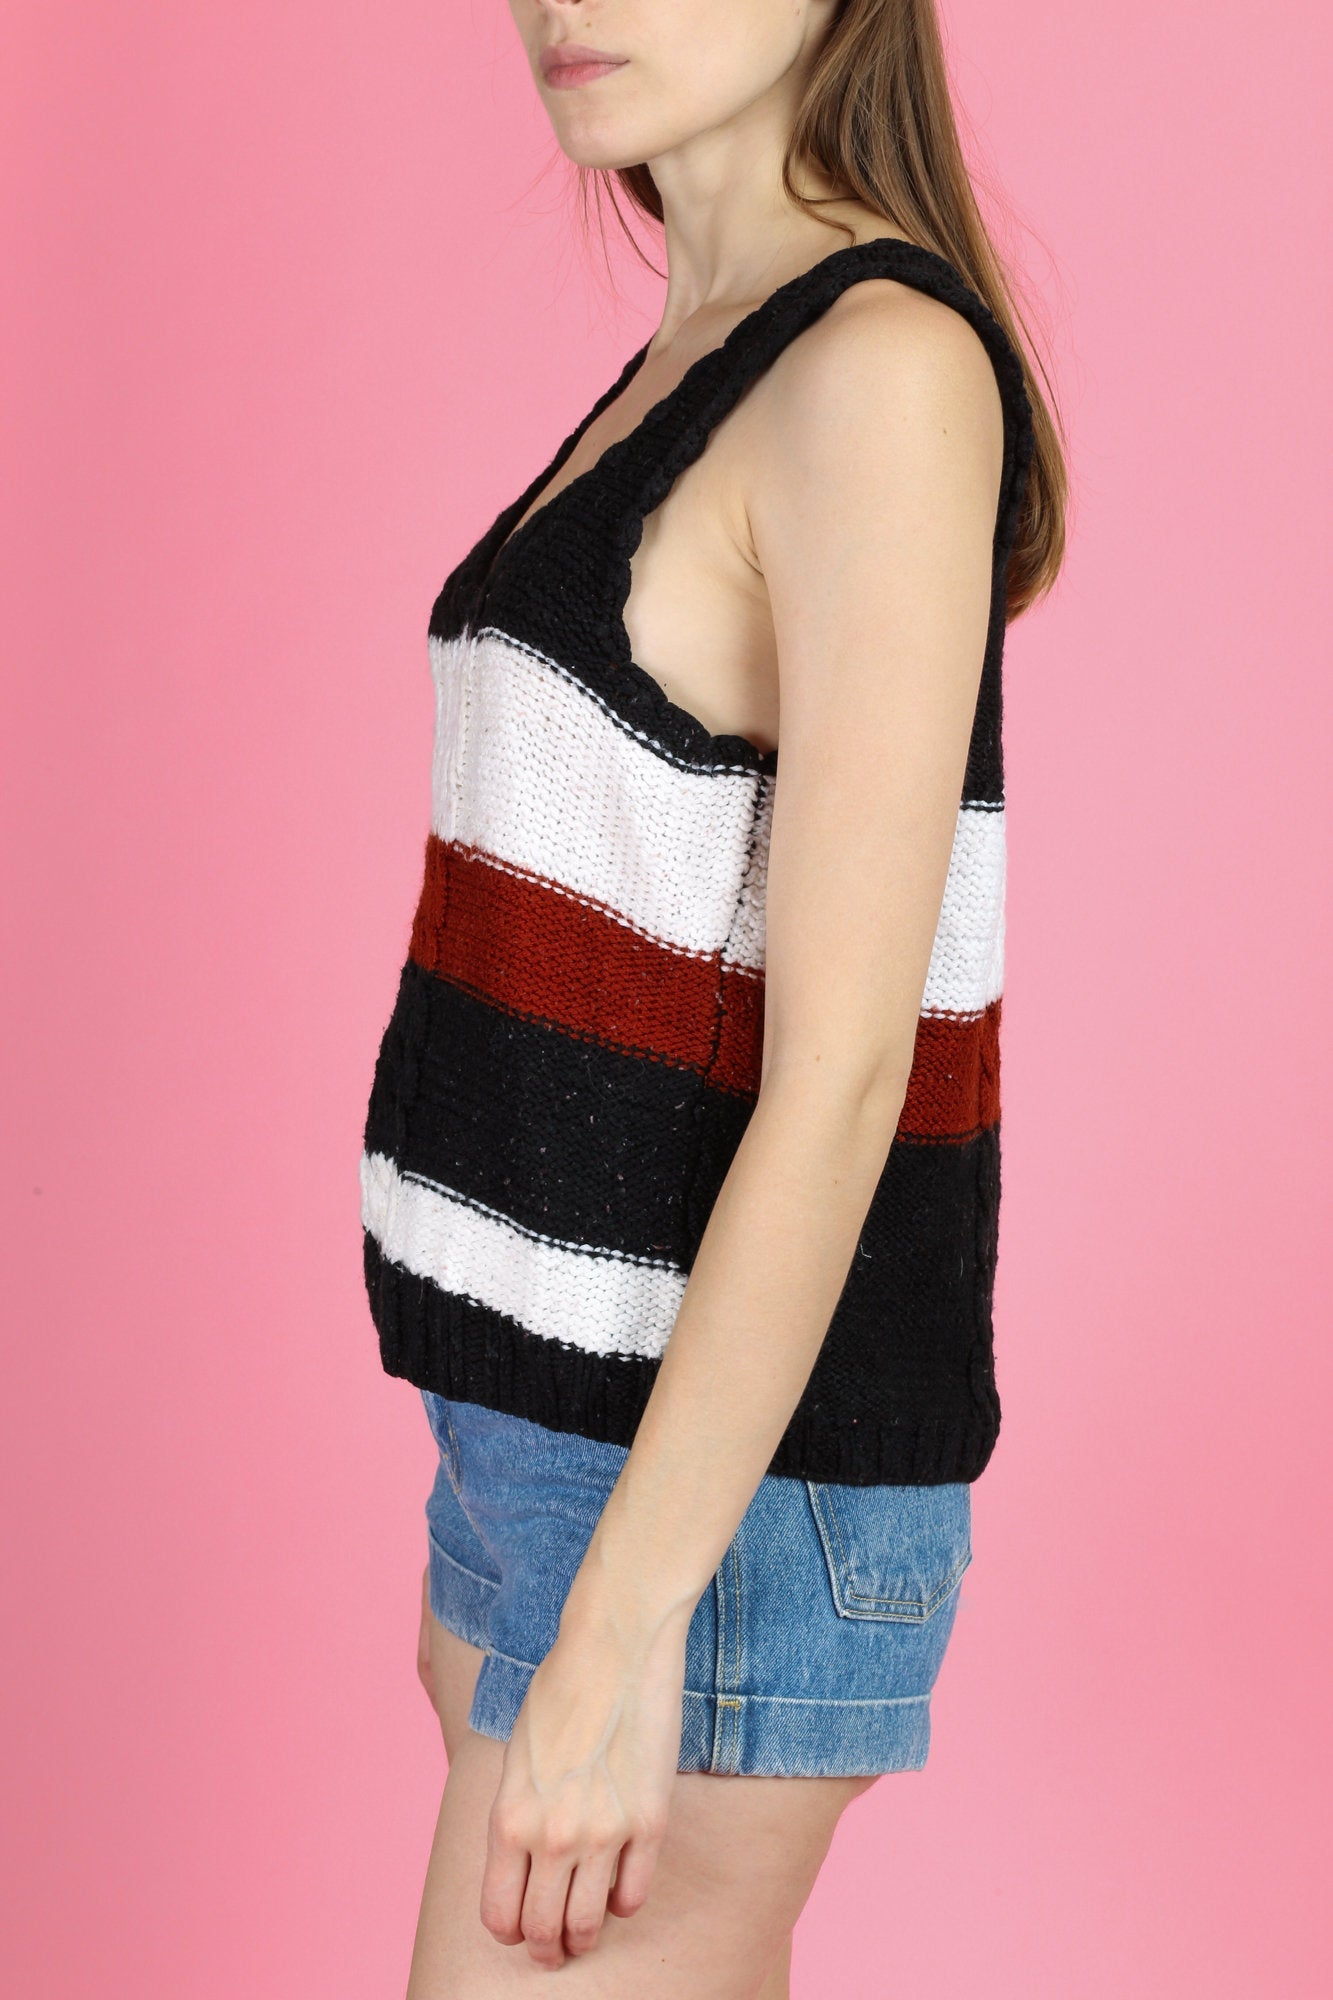 Vintage Sleeveless Cable Knit Sweater Top - Medium